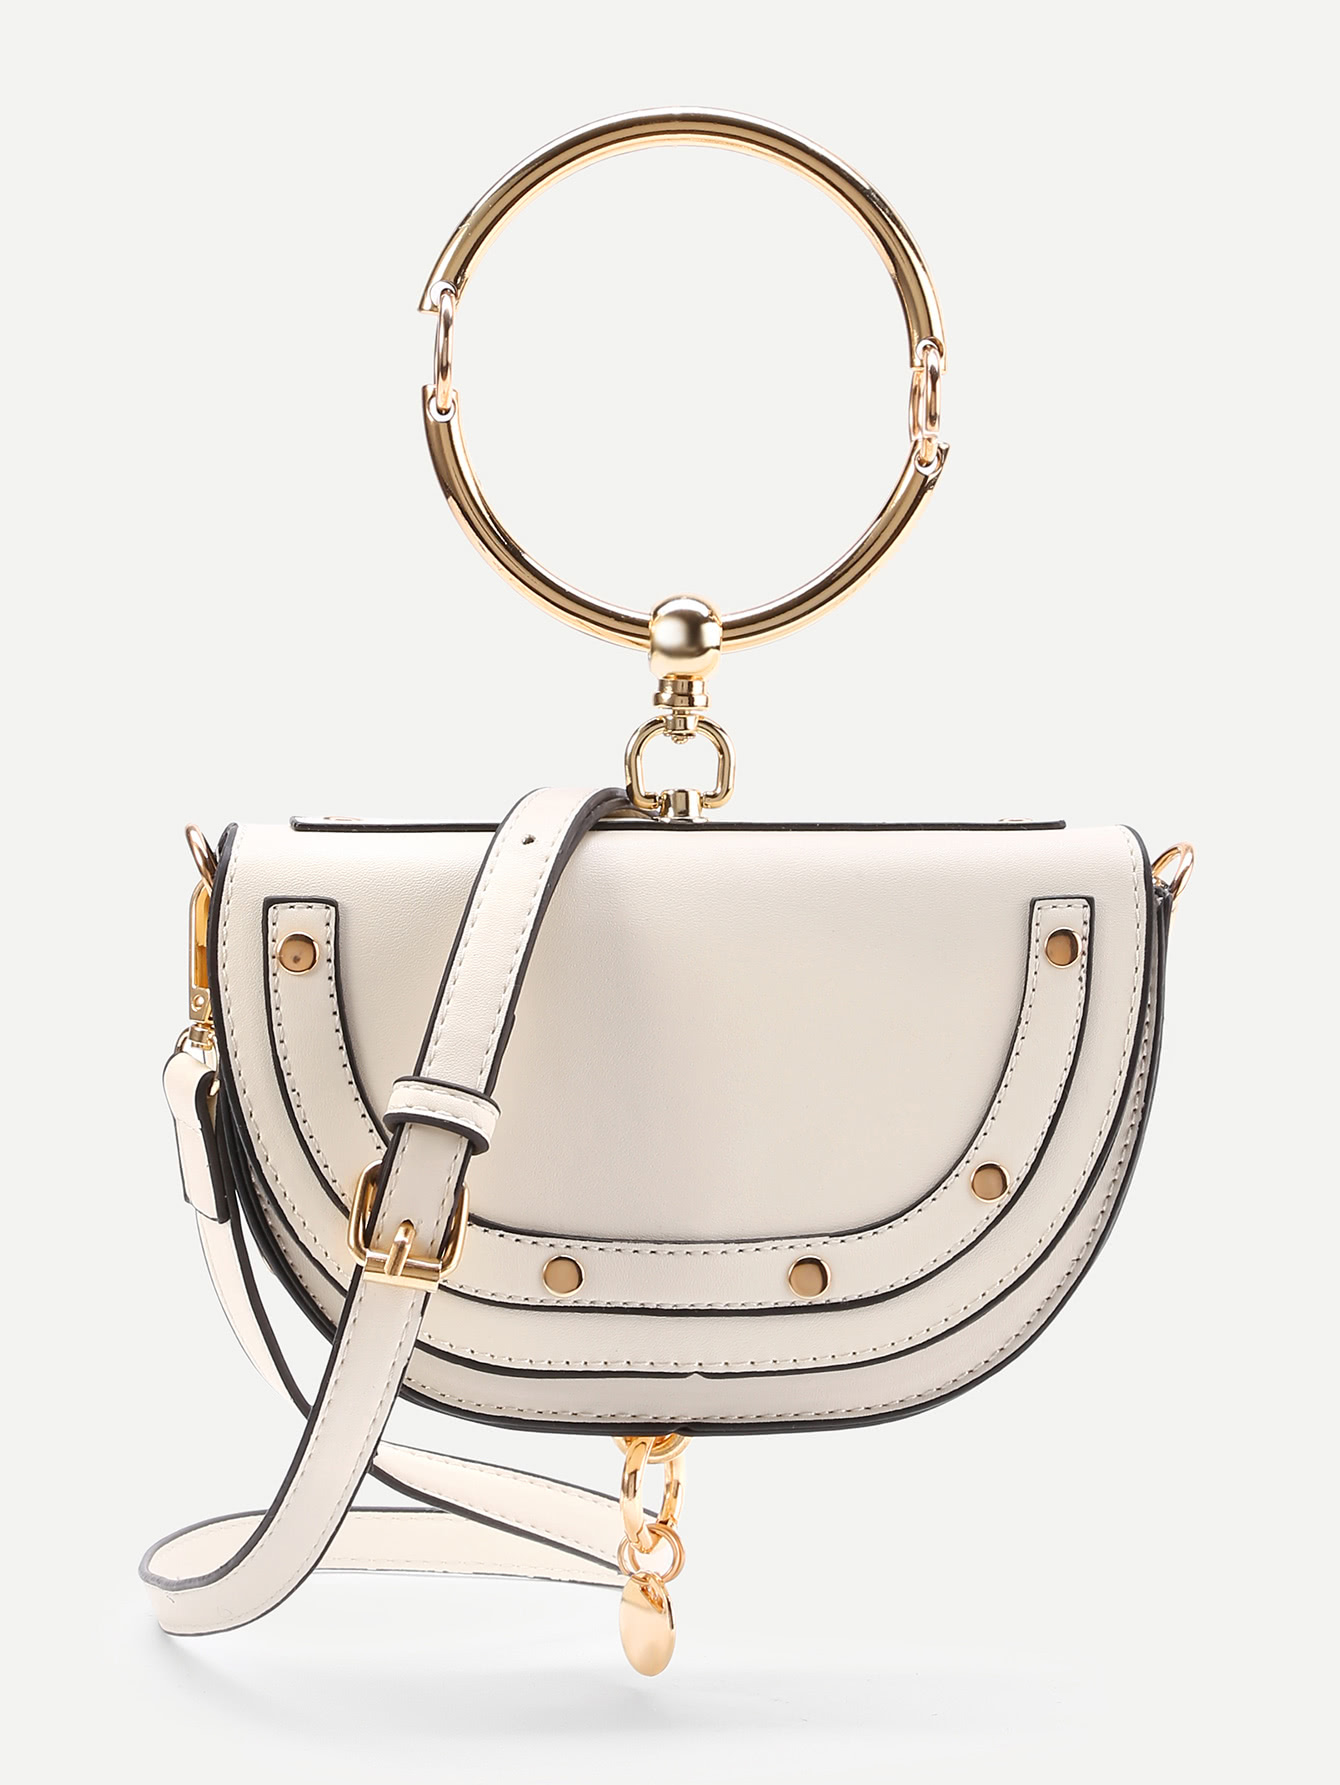 34b45992 Half Moon Shaped Crossbody Bag With Ring Handle | clothez/inspo in ...